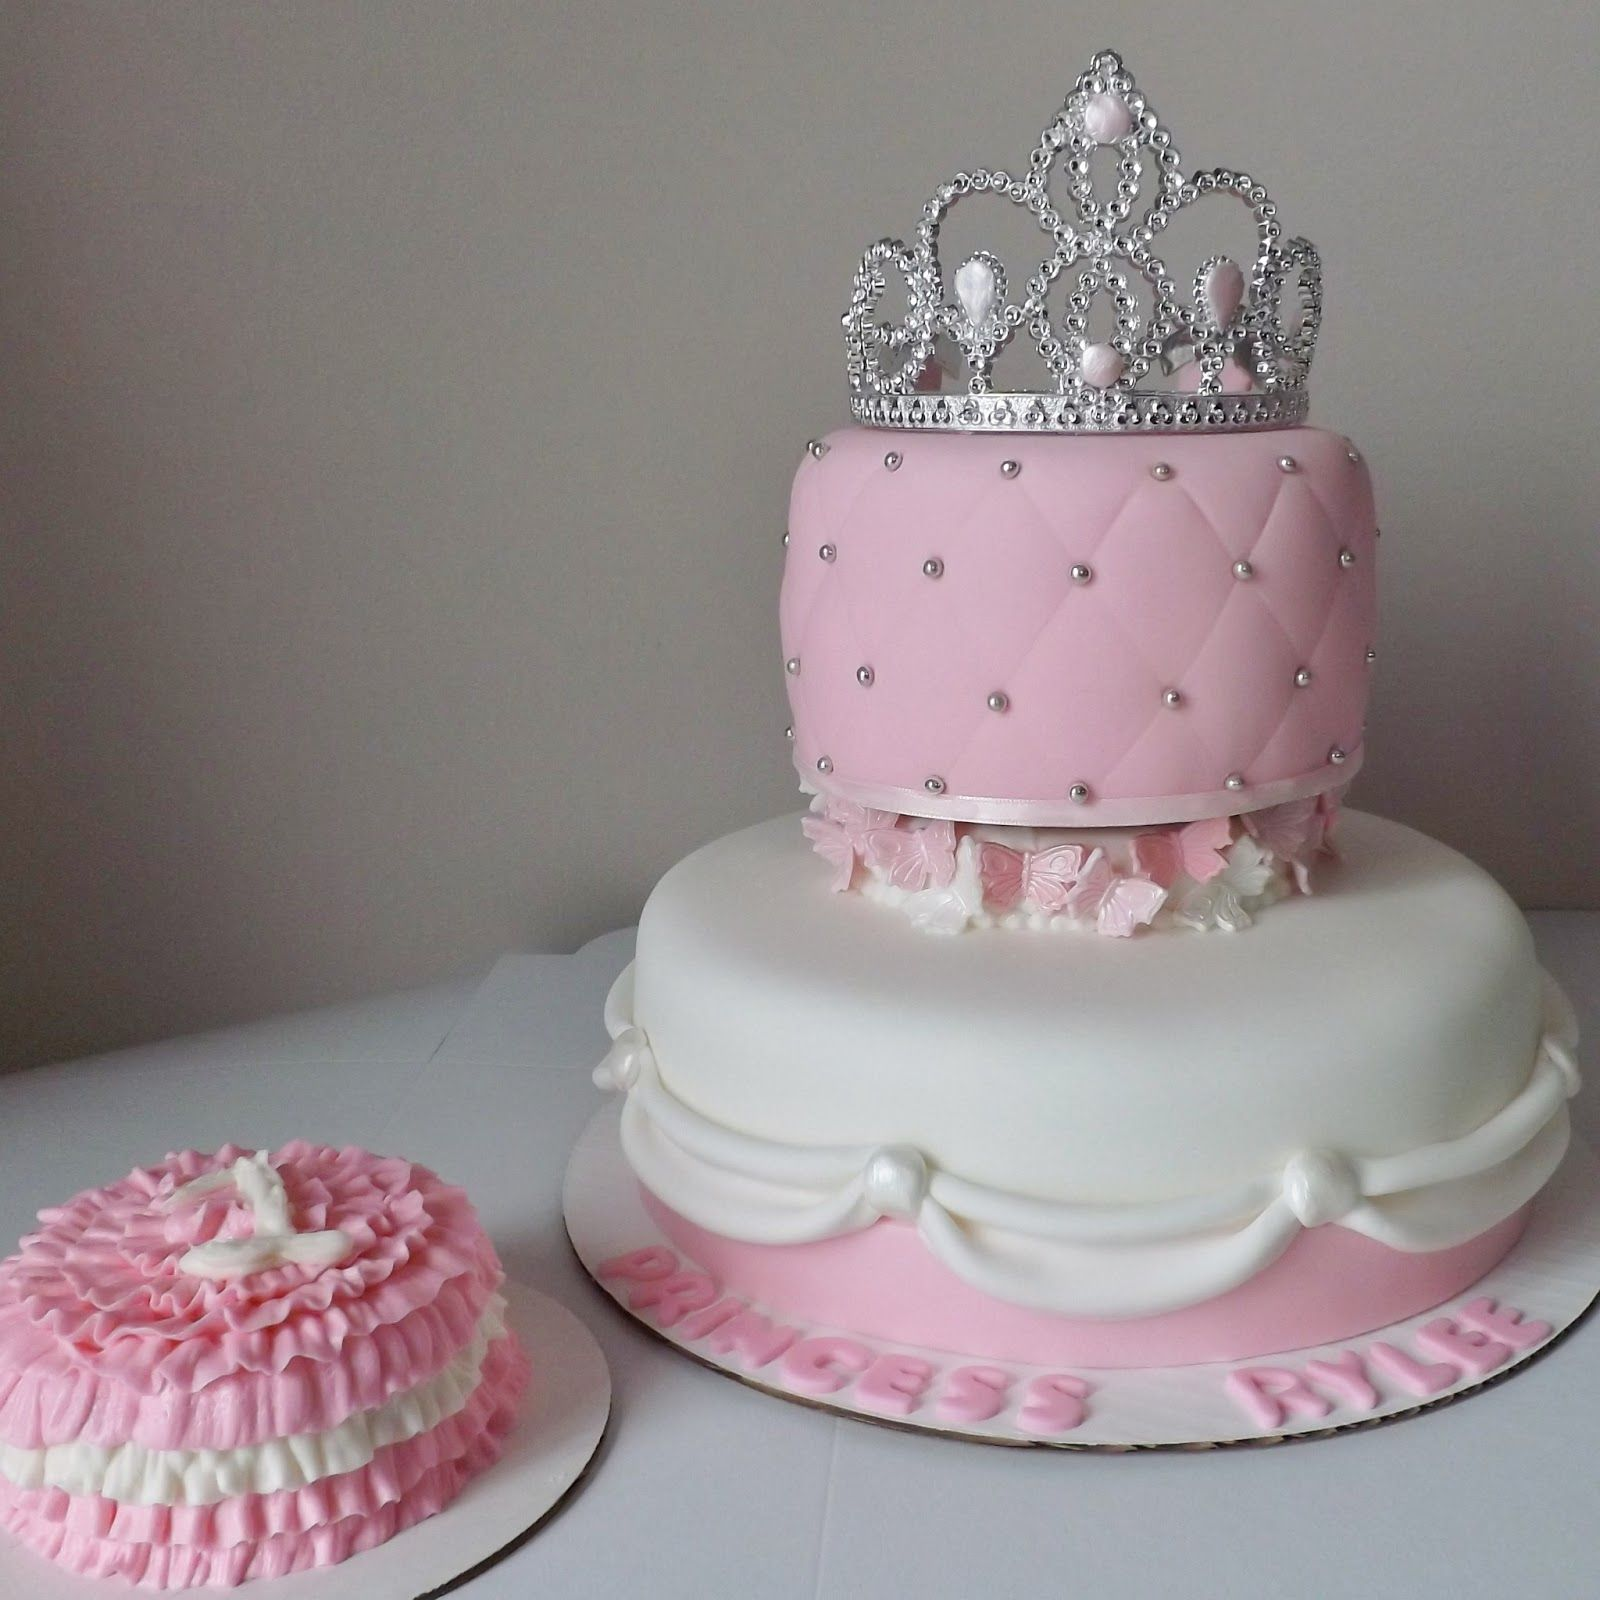 Princess tiara cake with butterfly support WallpaperPretty